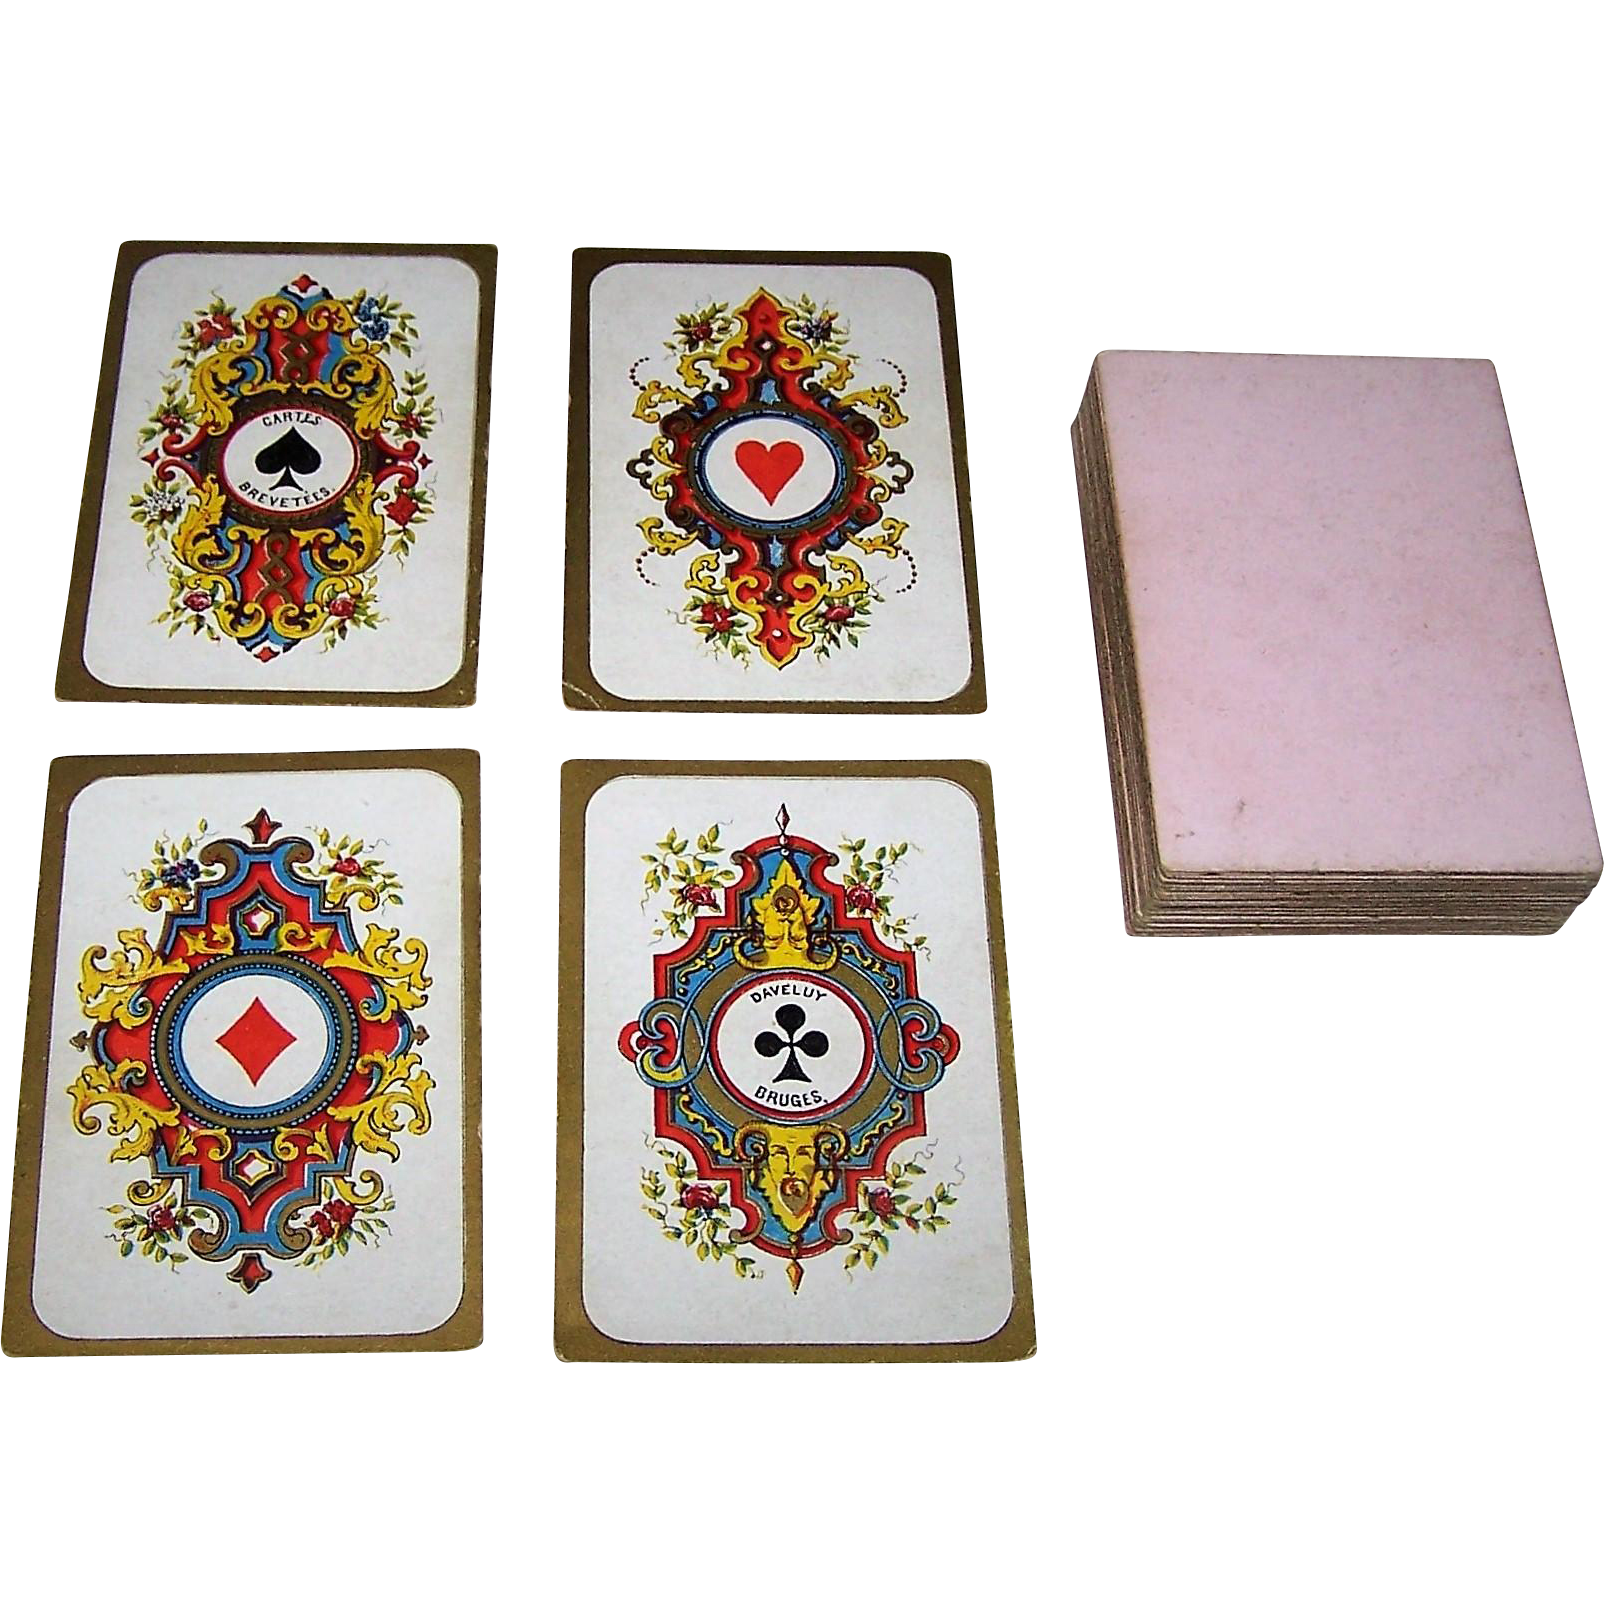 """Daveluy """"Moyen Age"""" (""""Middle Ages"""") Playing Cards, c.1860-1875"""